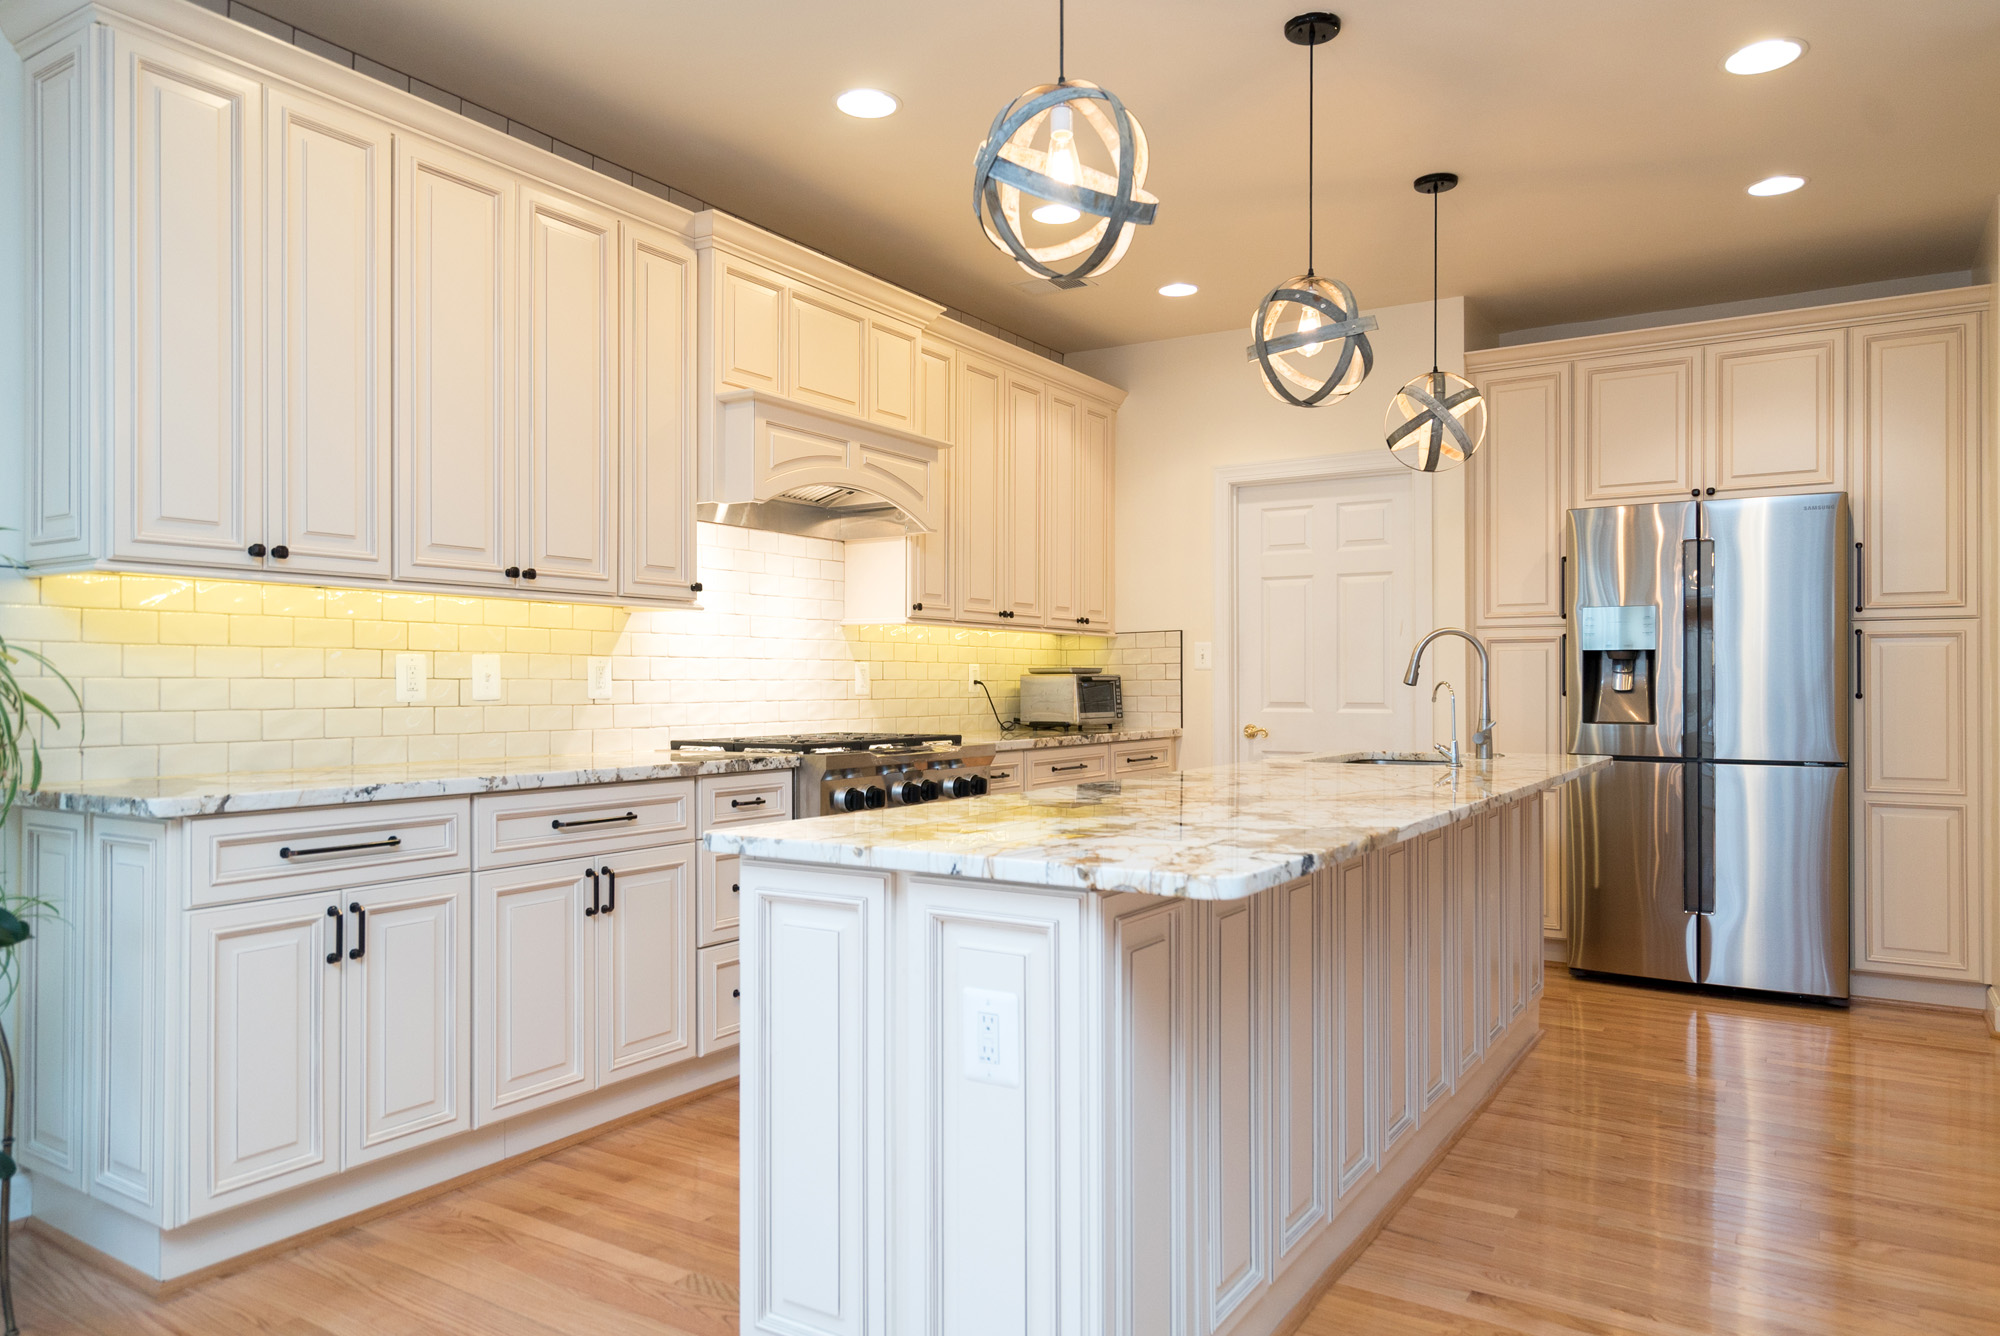 Kitchen Remodeling in Fairfax VA Ayoub Onal